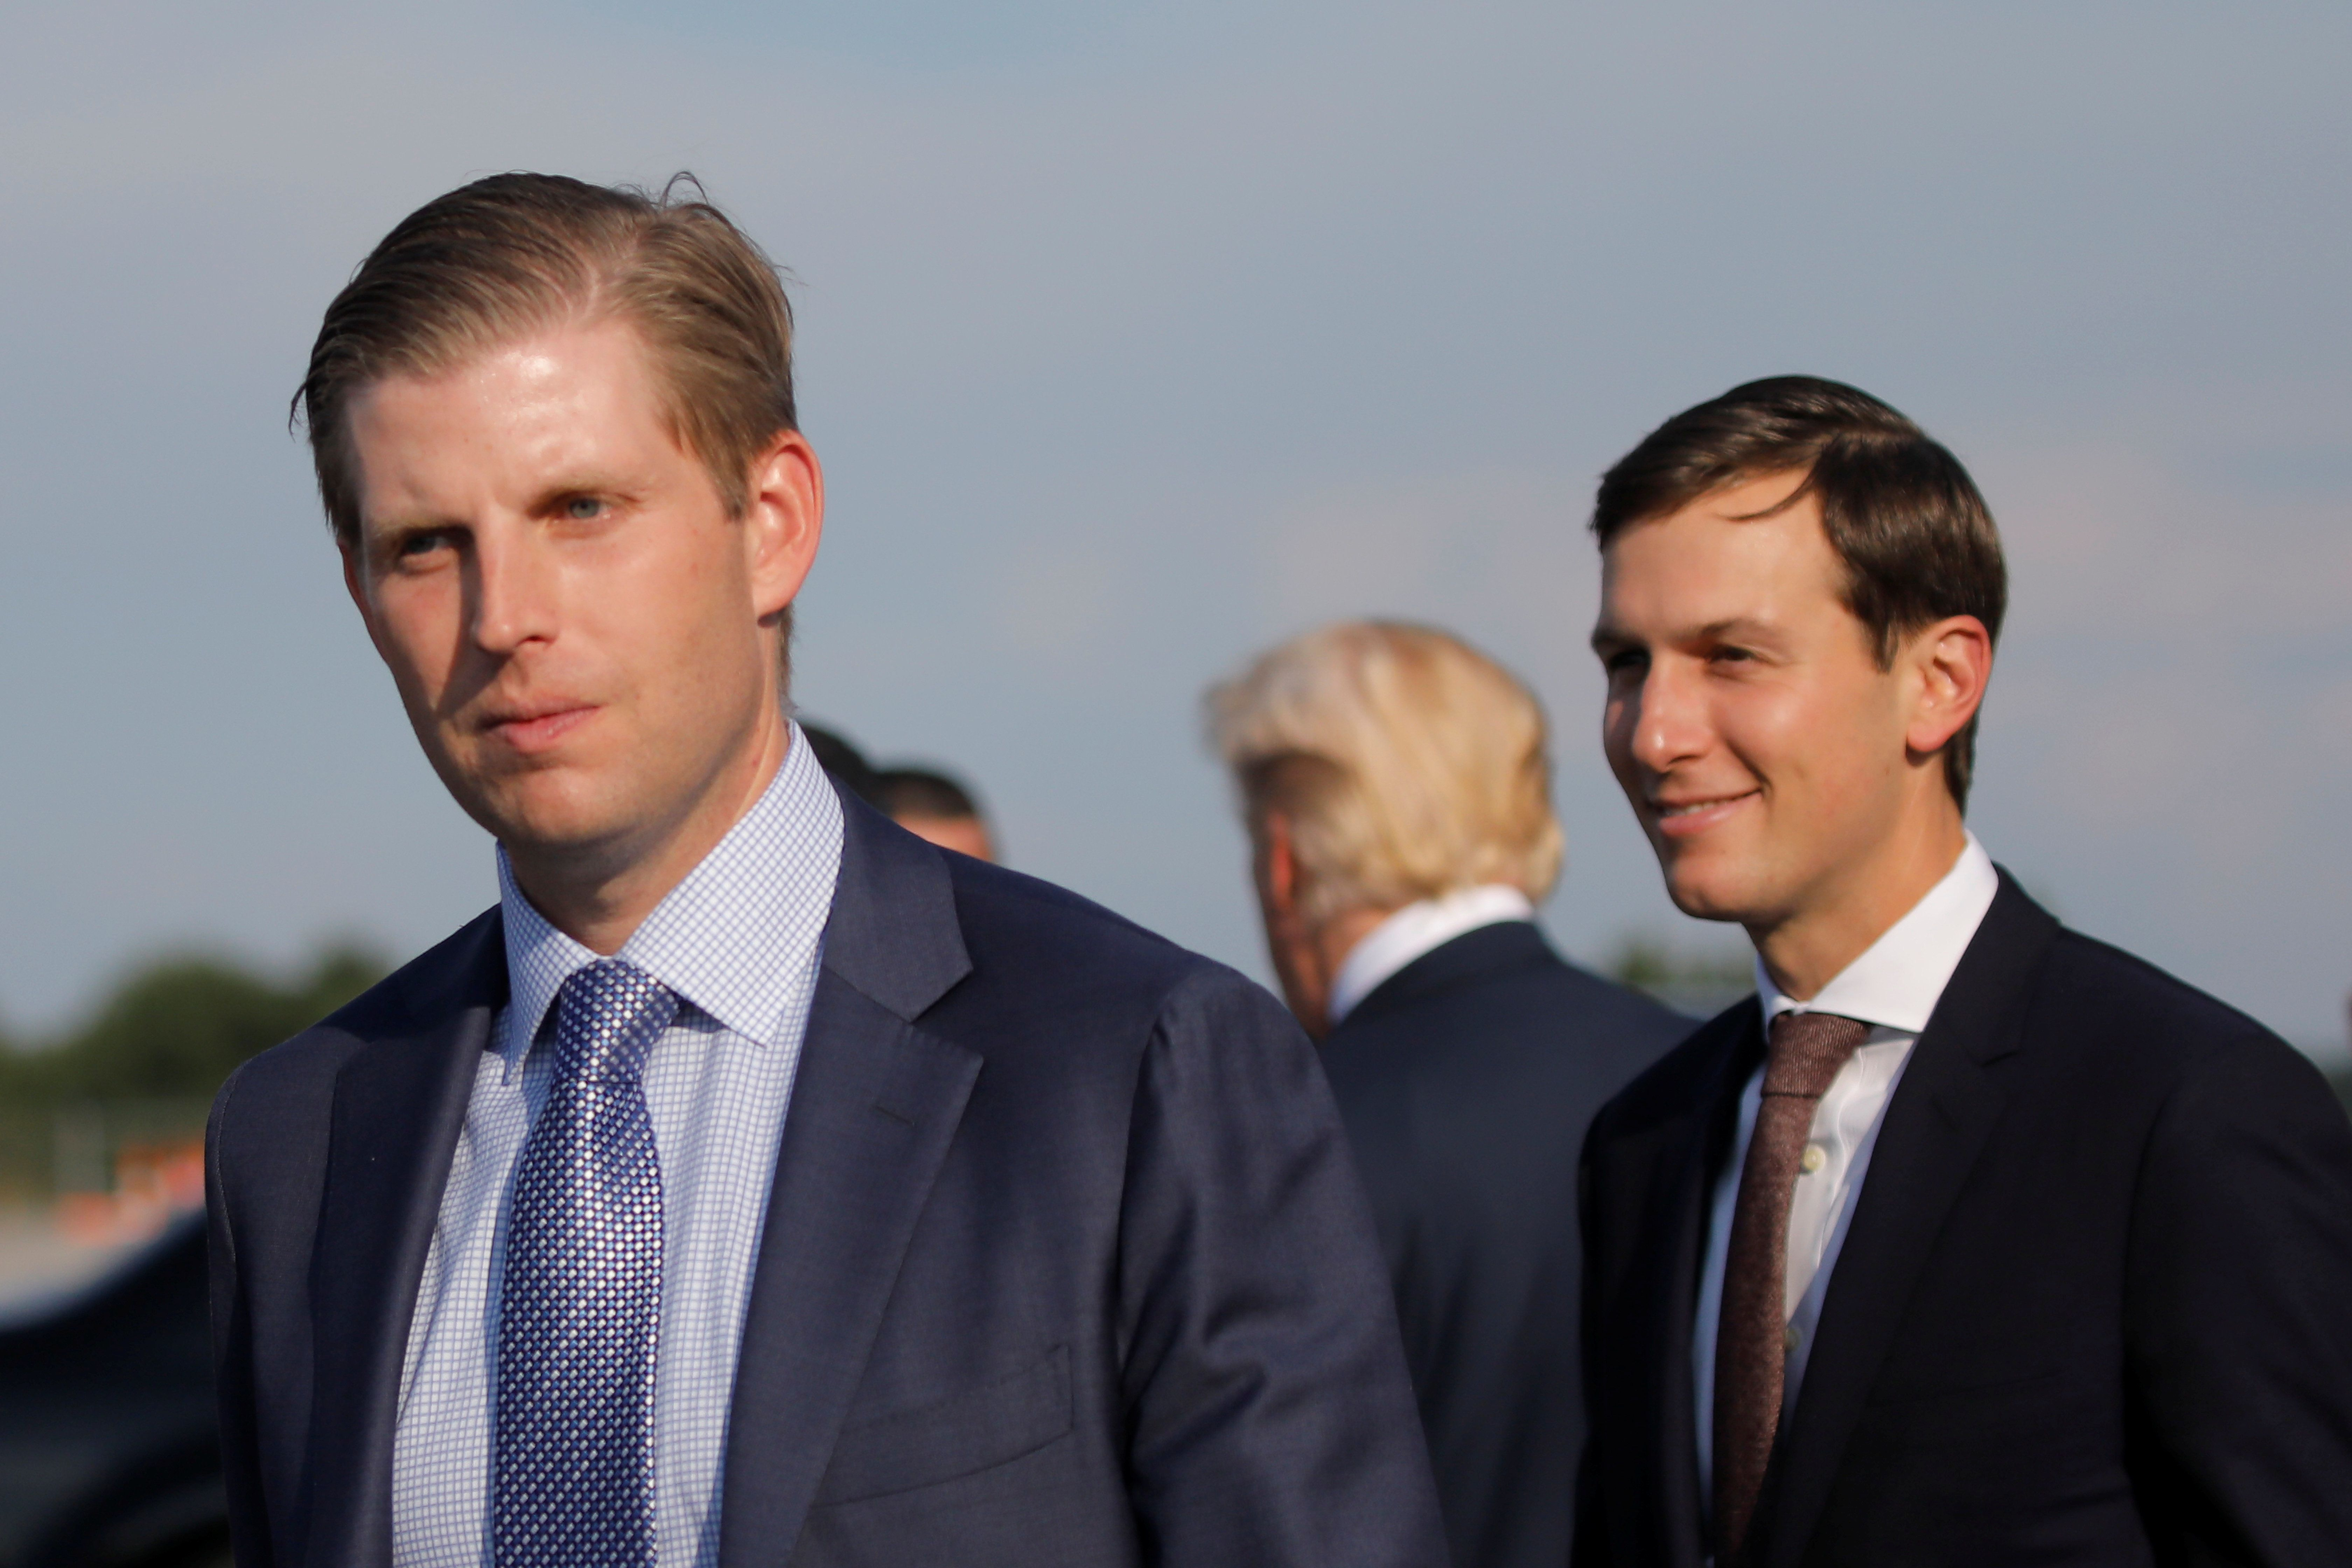 Eric Trump and Jared Kushner (R) arrive at Huntington tri-state airport as they accompany U.S. President Donald Trump for a rally in Huntington, West Virginia U.S., August 3, 2017. REUTERS/Carlos Barria